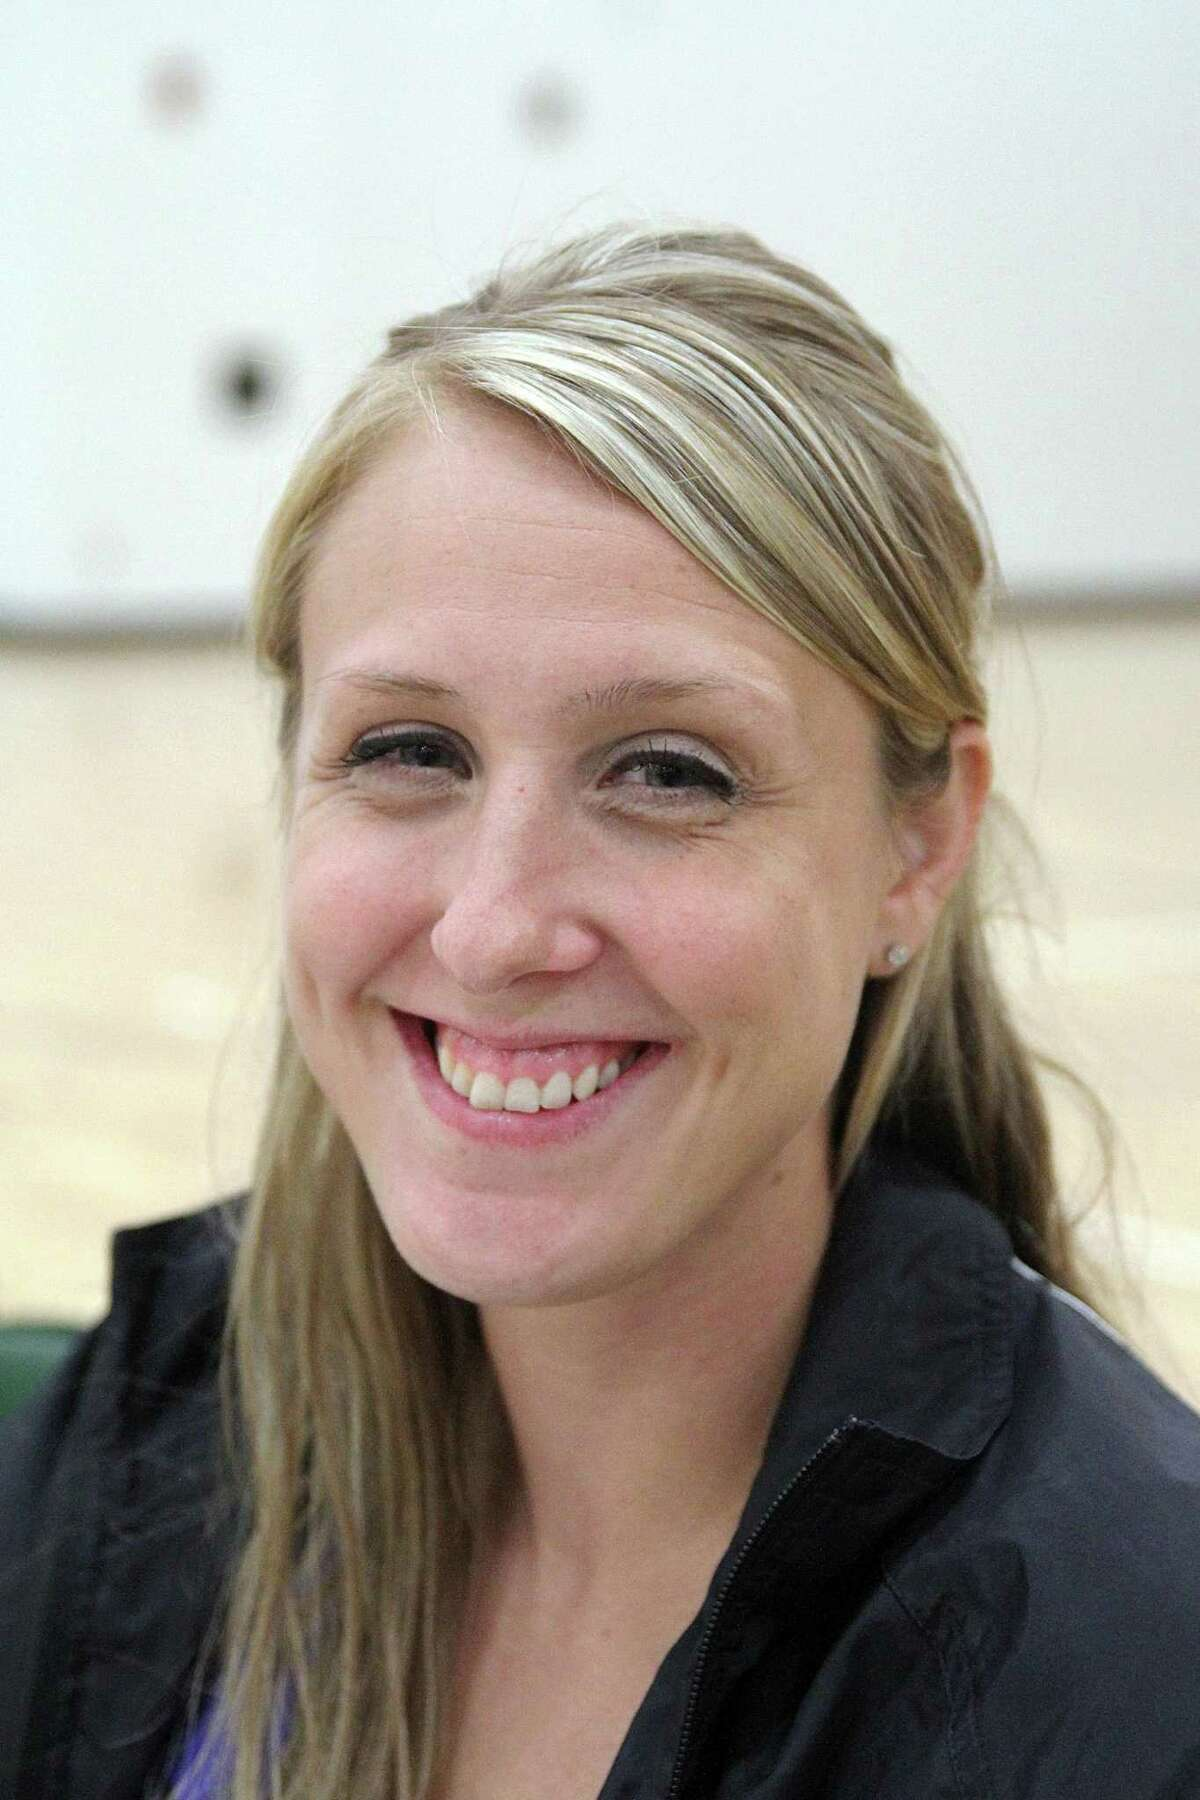 Alison Kley Williams has been hired as the head volleyball coach at Clear Falls High School. Photo by Pin Lim.